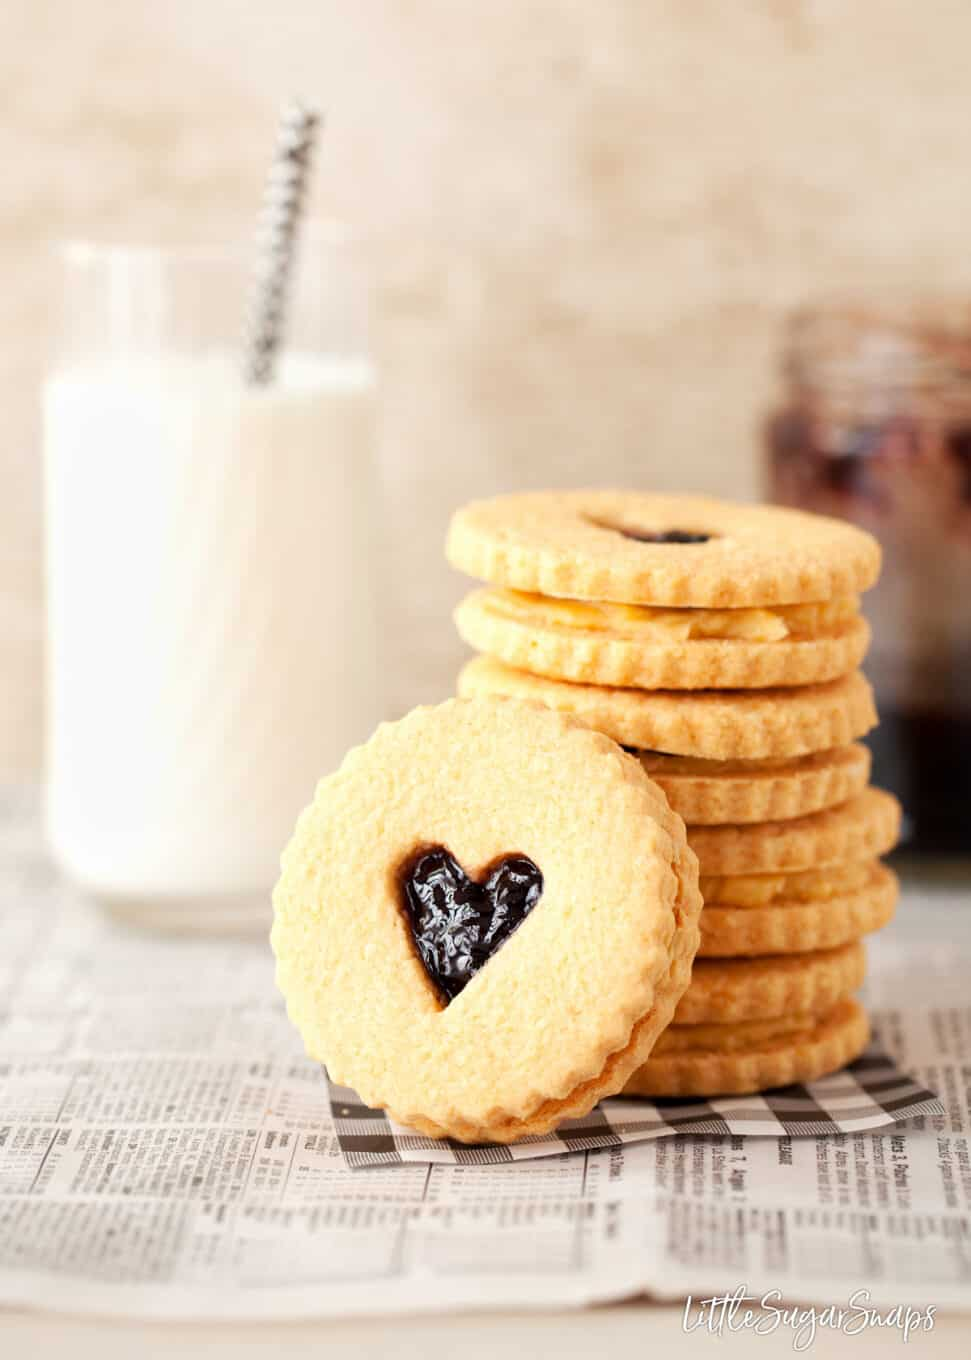 Biscuits made from a custard creams recipe and filled with custard cream filling and jam. Stacked up next to a glass of milk with one on it's side in front of the stack